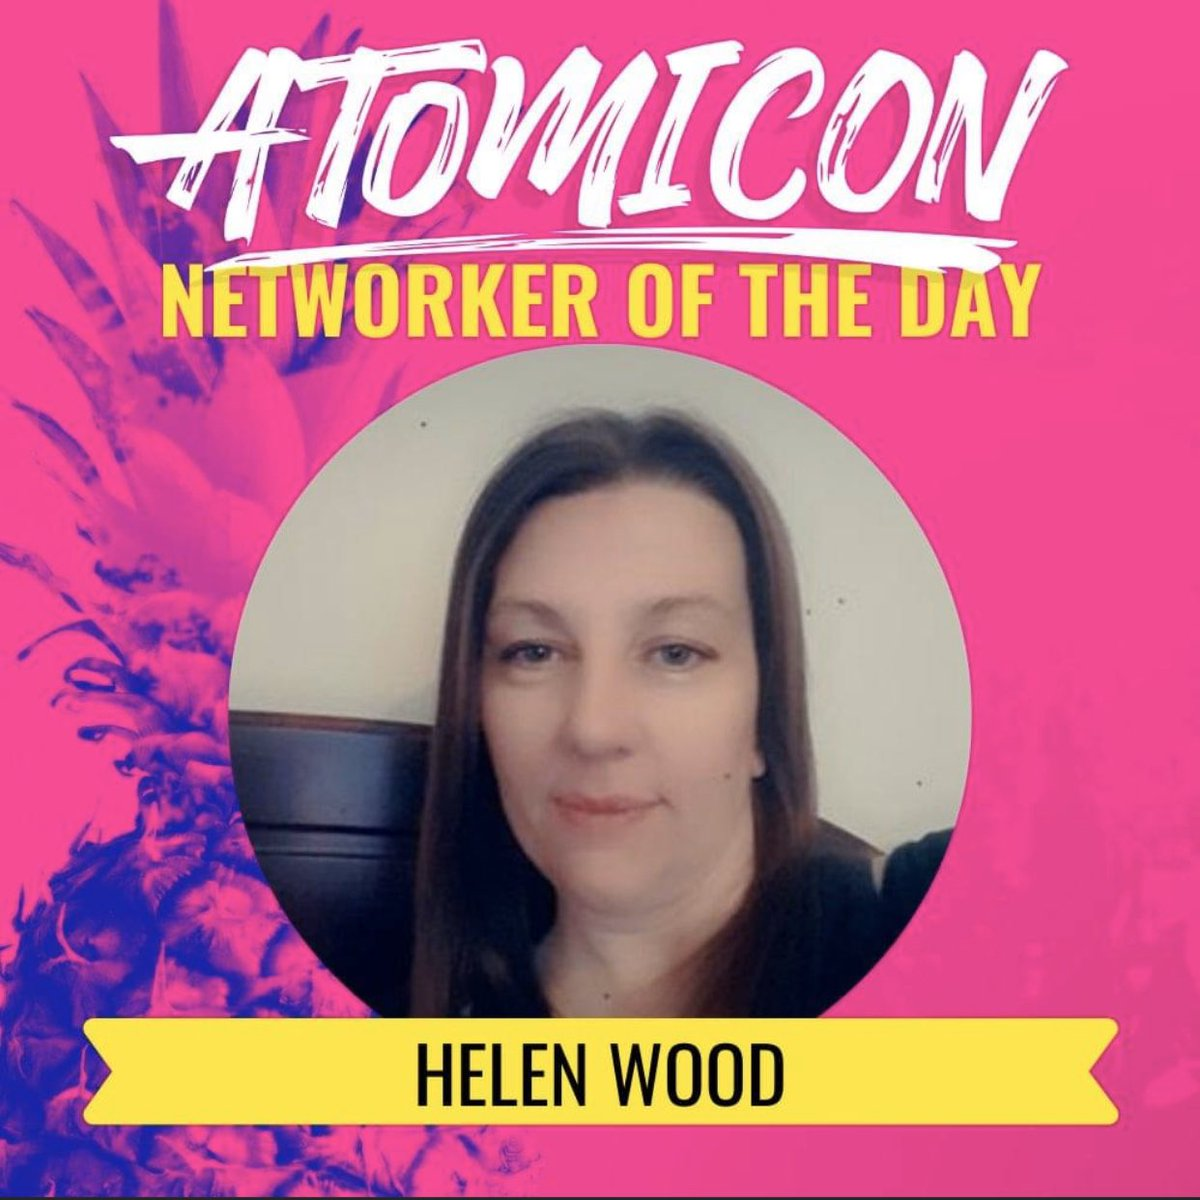 It was a hard decision but @samanthaJHill1 chose @helenrosepics as networker of the day!   Congratulations Helen!!   #ATOMICON20pic.twitter.com/Zl1BPLXpEr